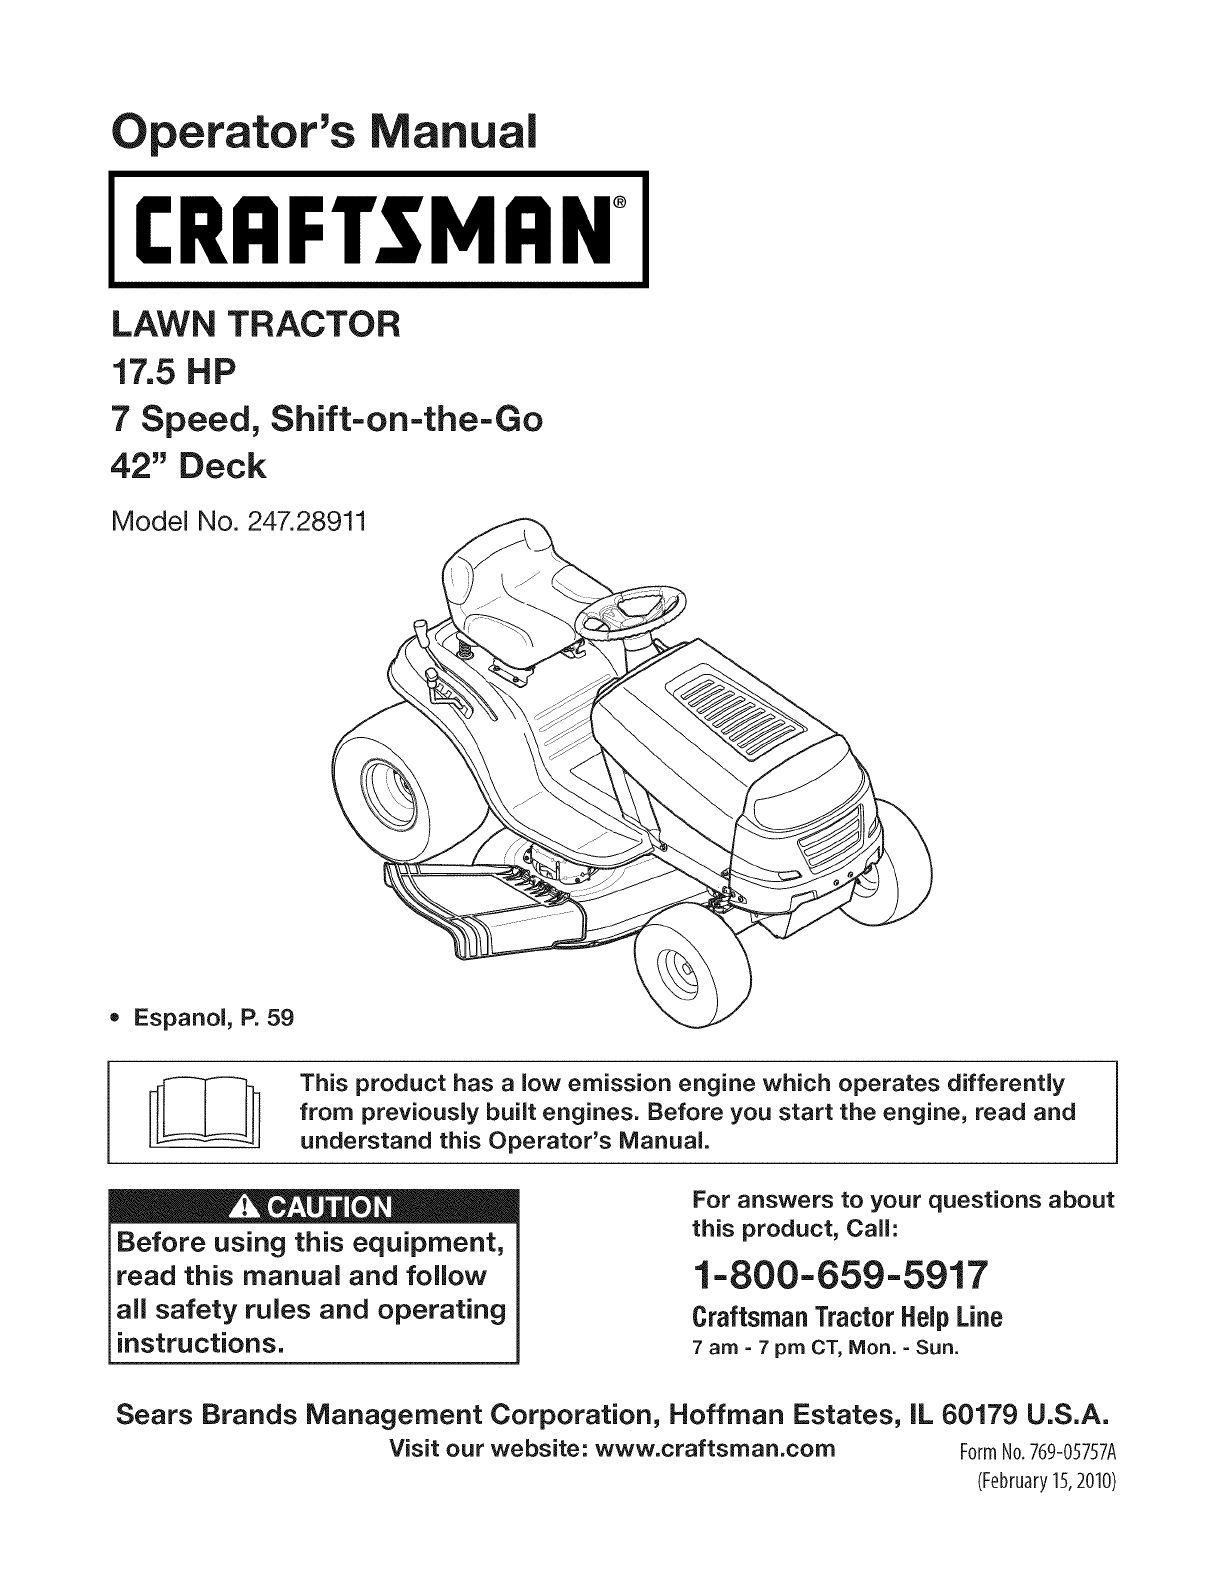 8e7b3384 e1d3 48fe bee0 c4dbc25d375e bg1 craftsman lawn mower 28911 user guide manualsonline com craftsman riding lawn mower lt1000 wiring diagram at gsmx.co